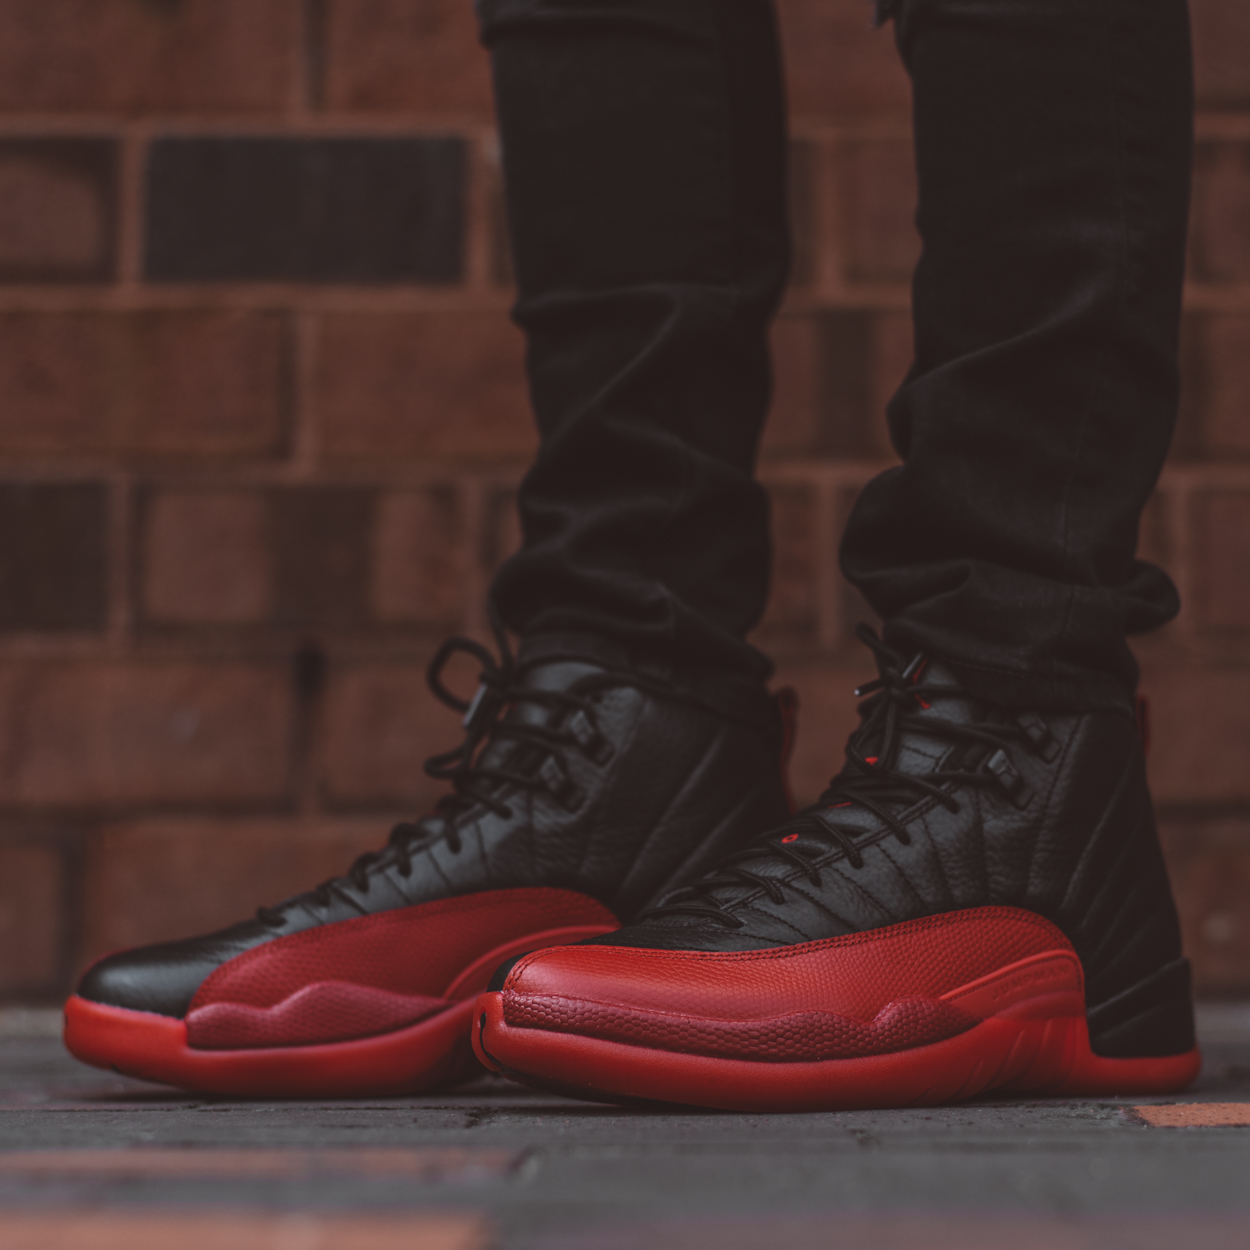 5ab18022b94226 air jordan 12 retro flu game 4 - WearTesters